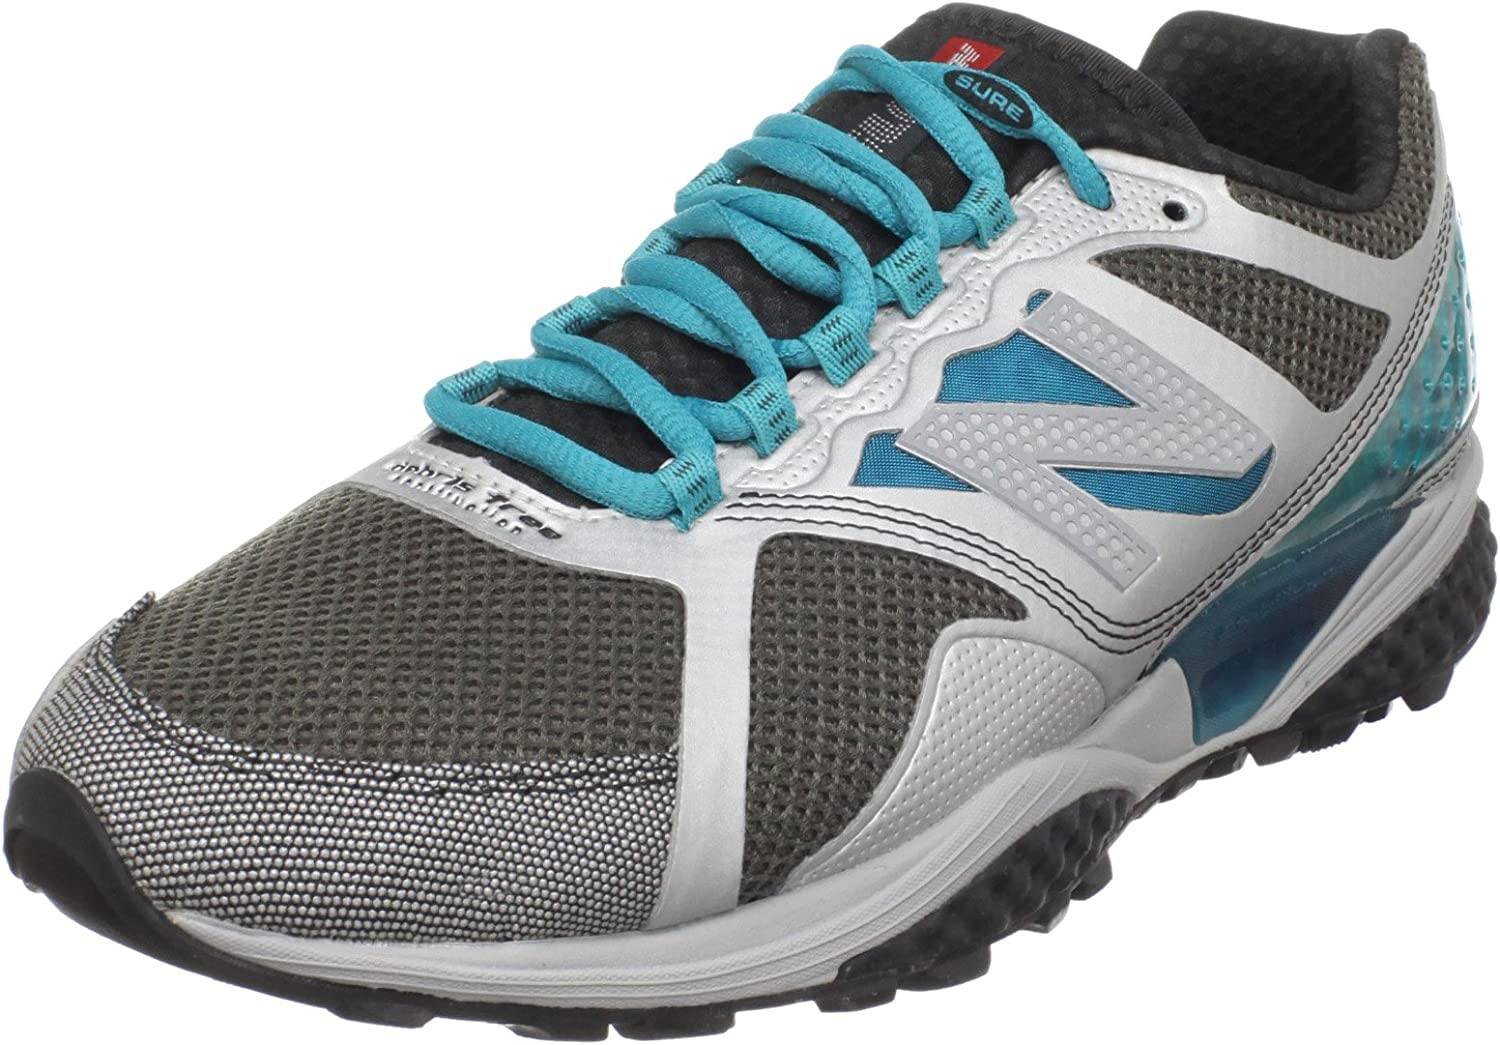 WT915 Trail And Off Road Shoe Silver